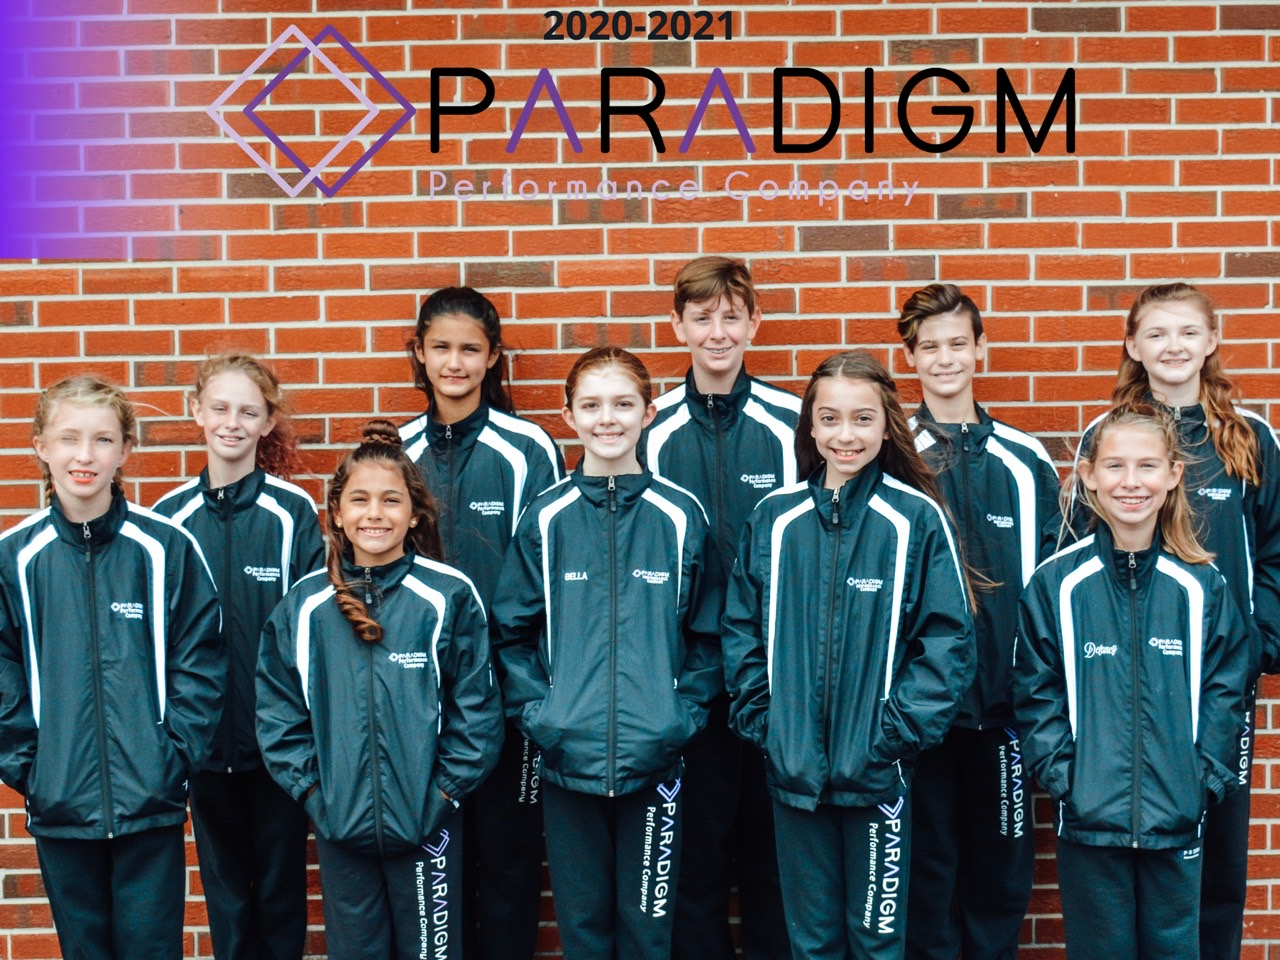 Paradigm Performance Company 2020-2021